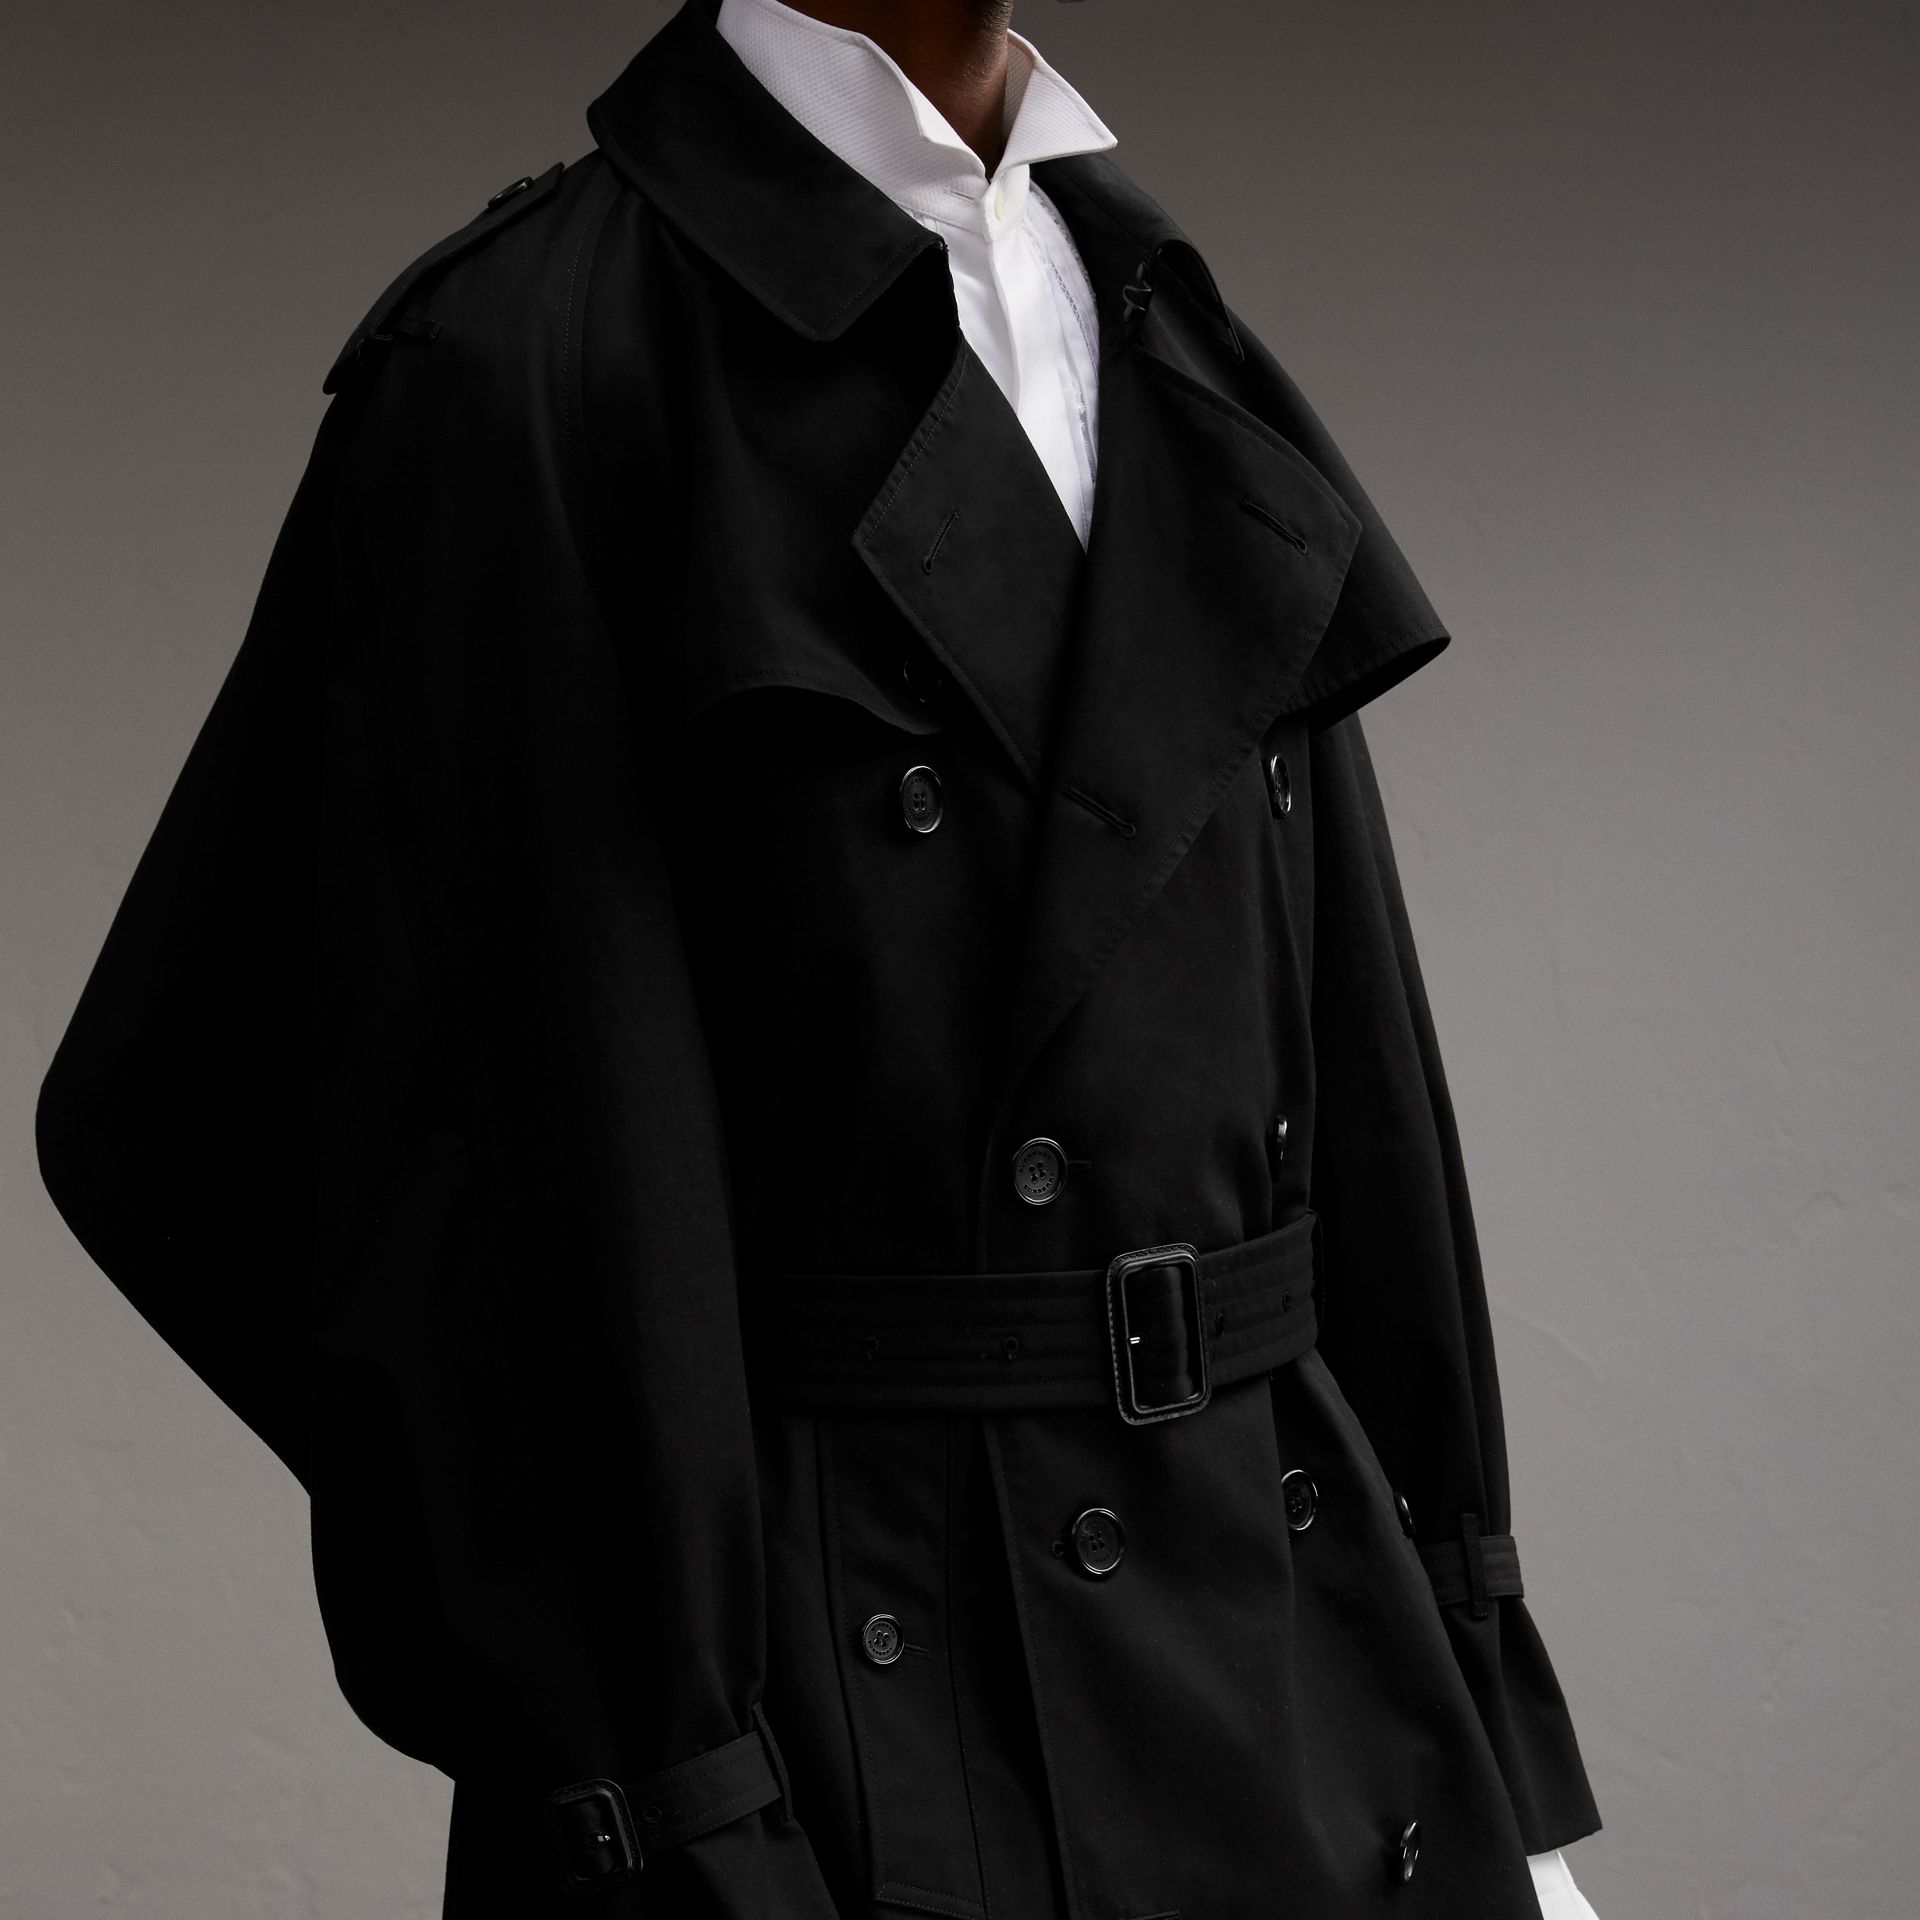 Cotton Gabardine Sculptural Trench Coat - Men | Burberry - gallery image 5